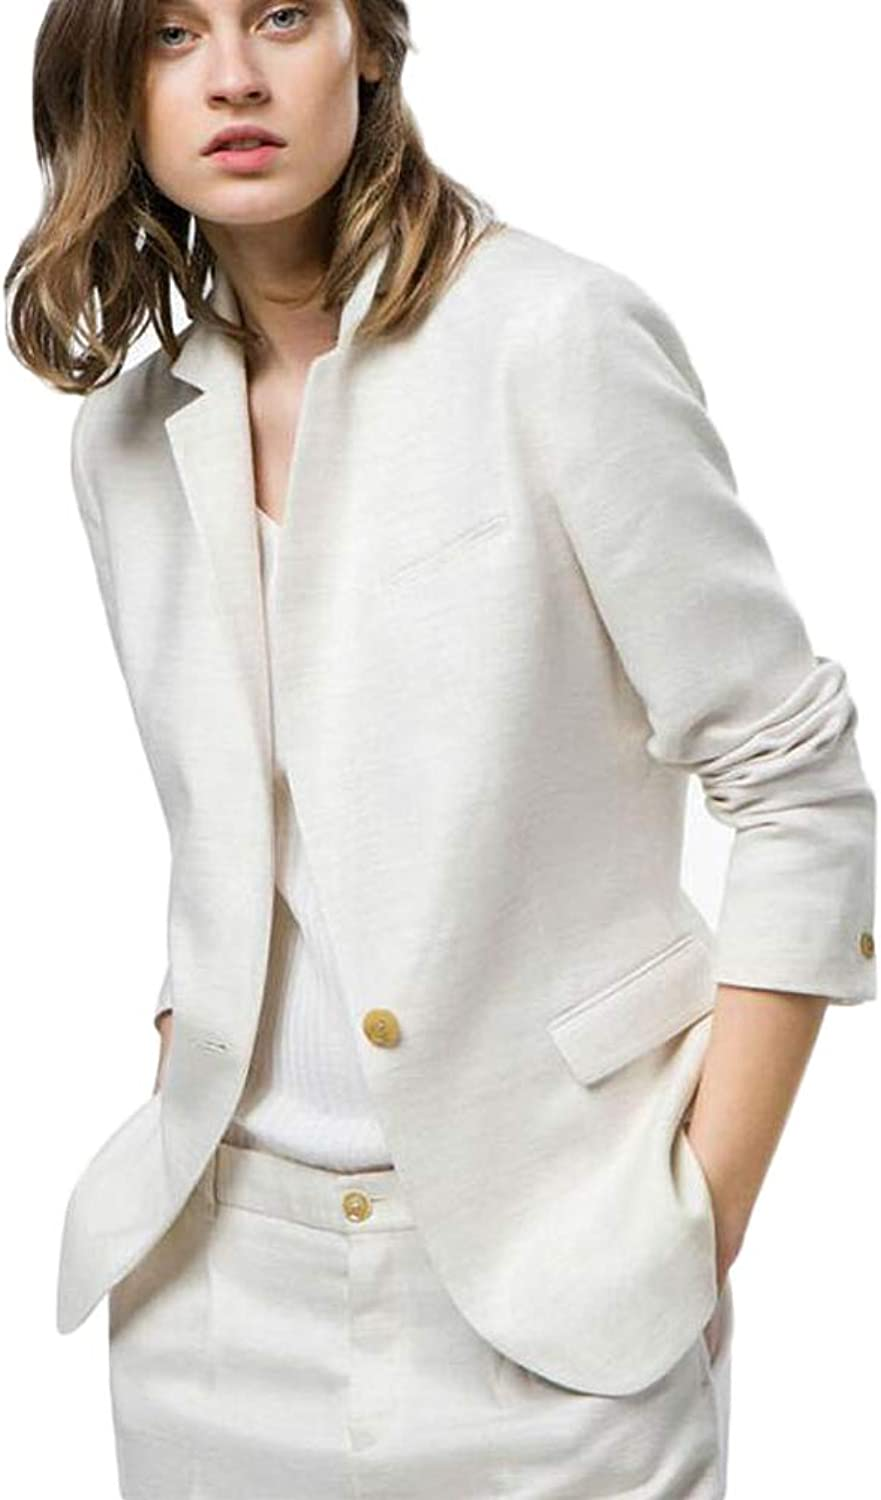 TOPG Womens White Suit Business Work Suits 2 Pieces Notch Lapel Suits One Button Wedding Suits